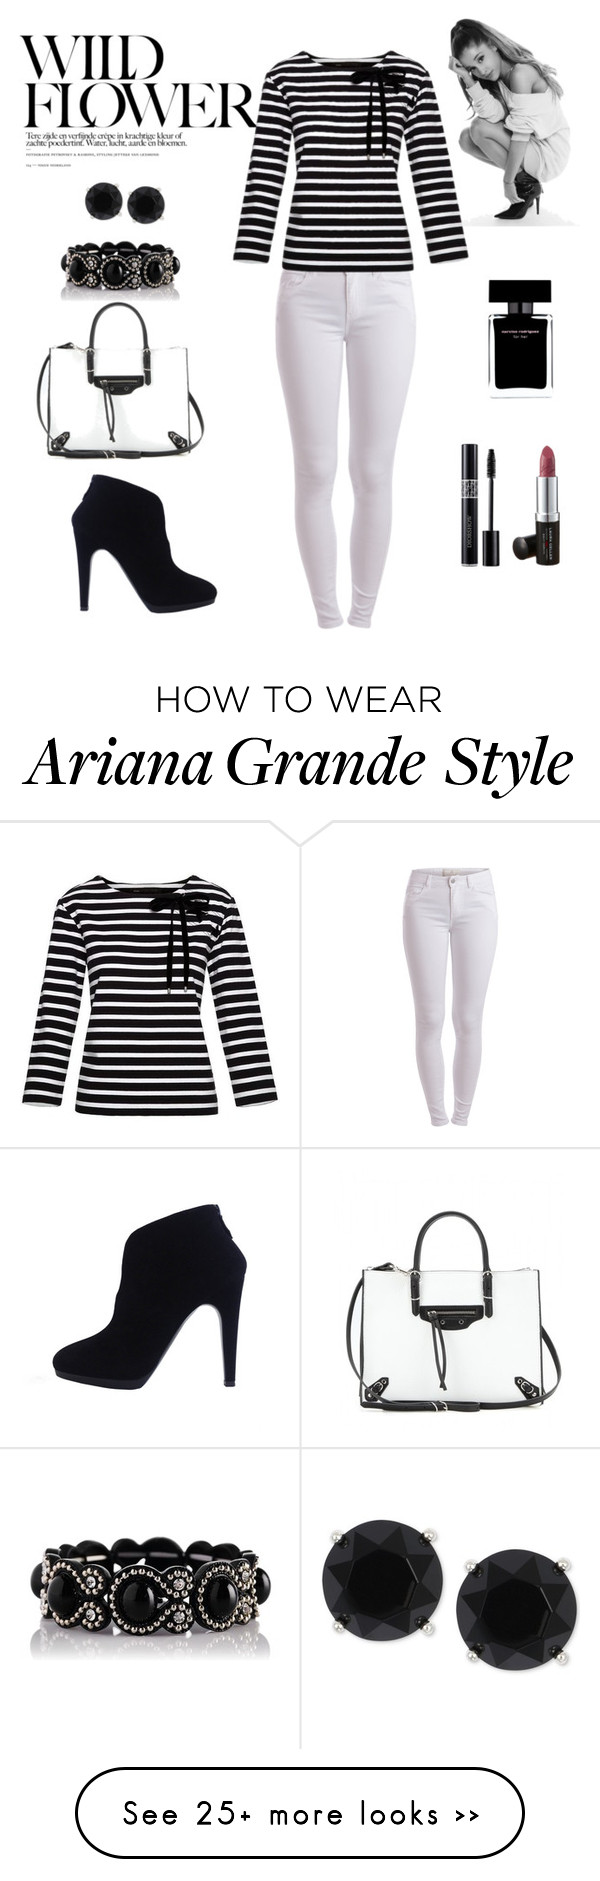 """""""Untitled #568"""" by gallant81 on Polyvore featuring Pieces, Marc by Marc Jacobs, Balenciaga, Anne Klein, Christian Dior, Laura Geller and Narciso Rodriguez"""